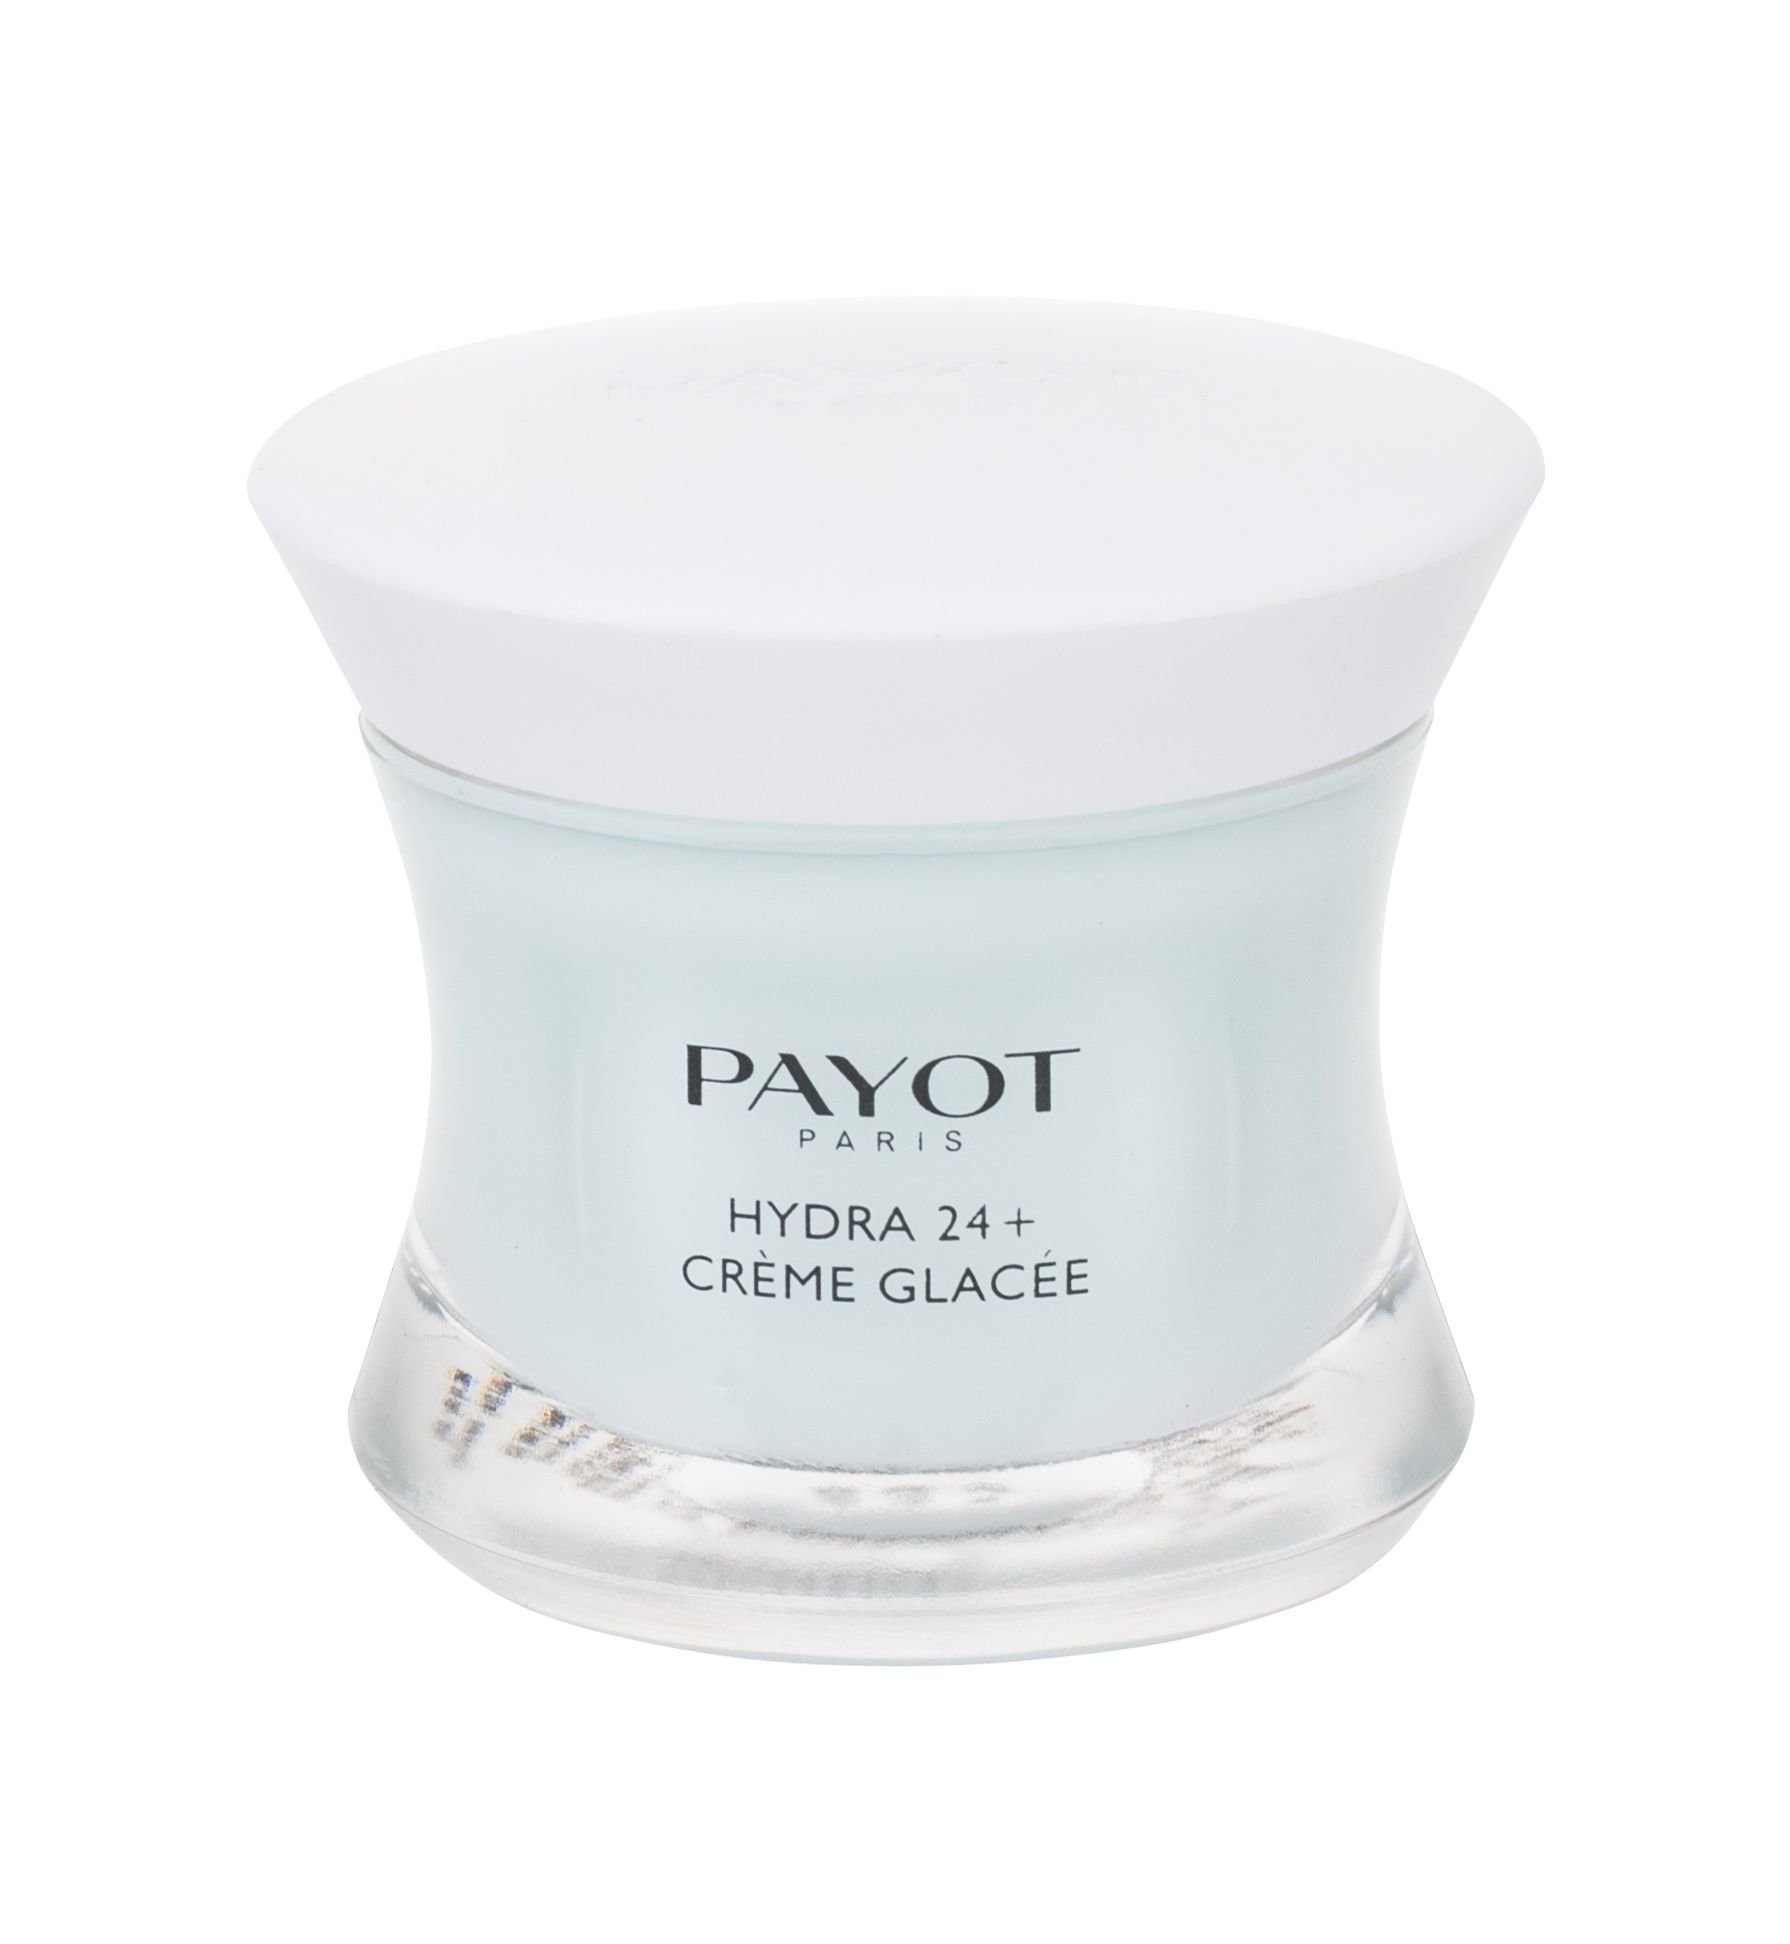 PAYOT Hydra 24+ Day Cream 50ml  Creme Glacee